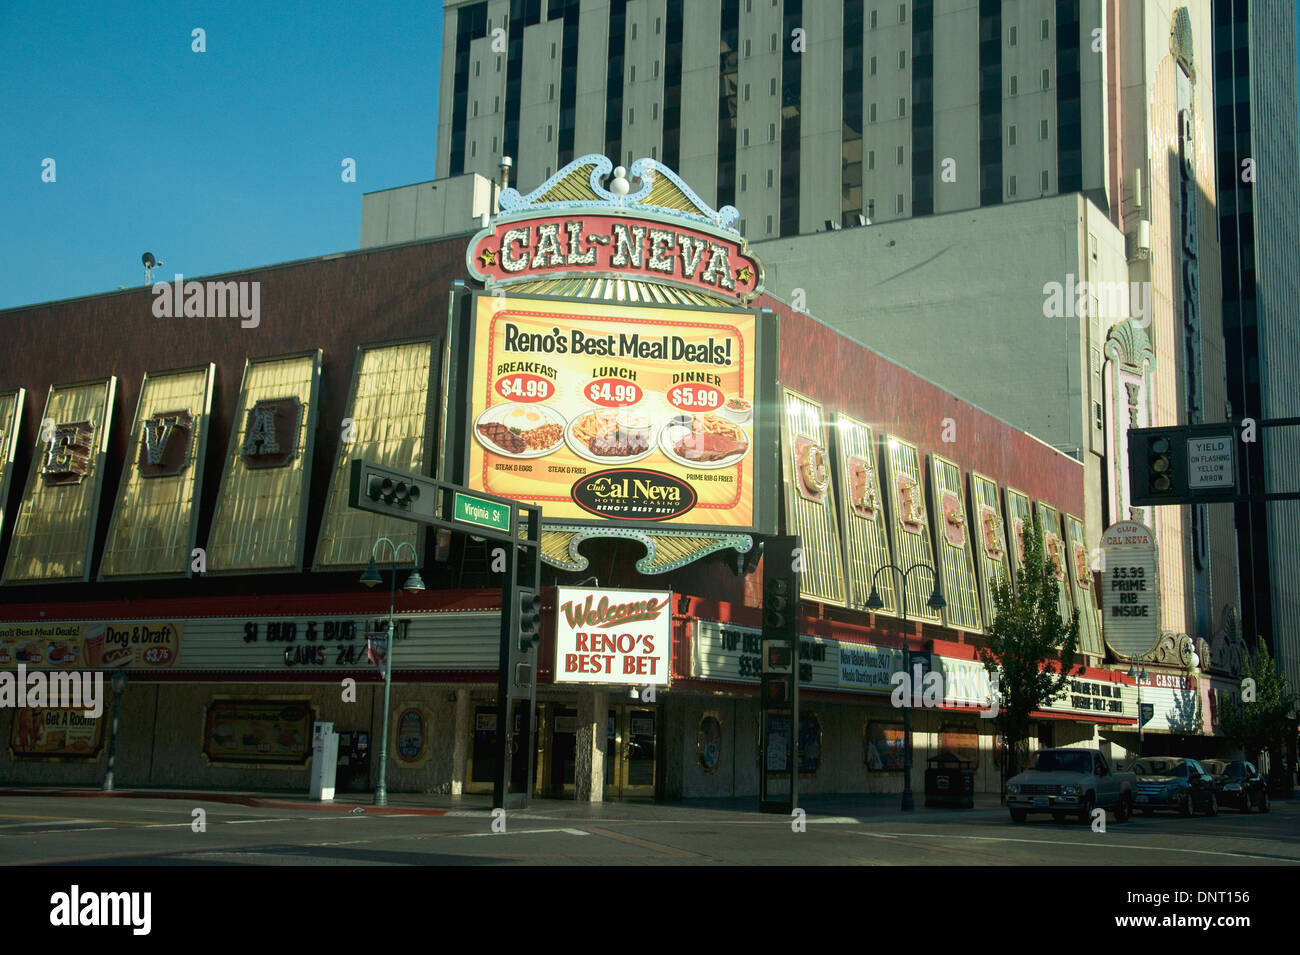 In Reno, Nevada, a casino promotes cheap food and gambling to out-of-season empty streets at dusk - Stock Image